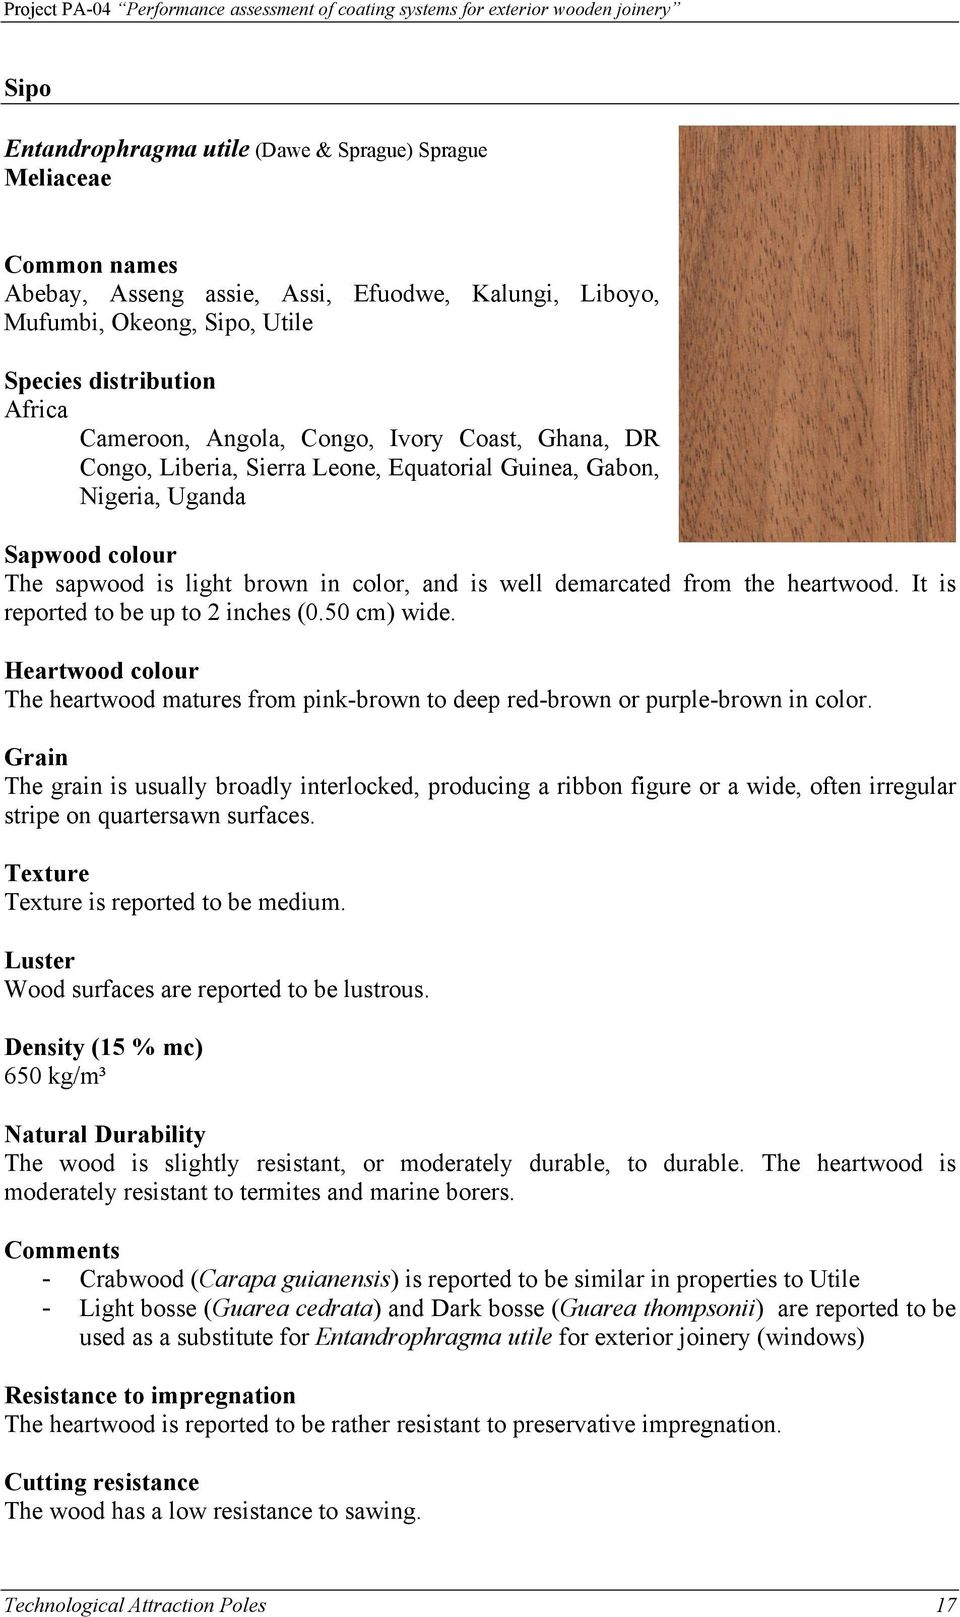 heartwood. It is reported to be up to 2 inches (. cm) wide. Heartwood colour The heartwood matures from pink-brown to deep red-brown or purple-brown in color.